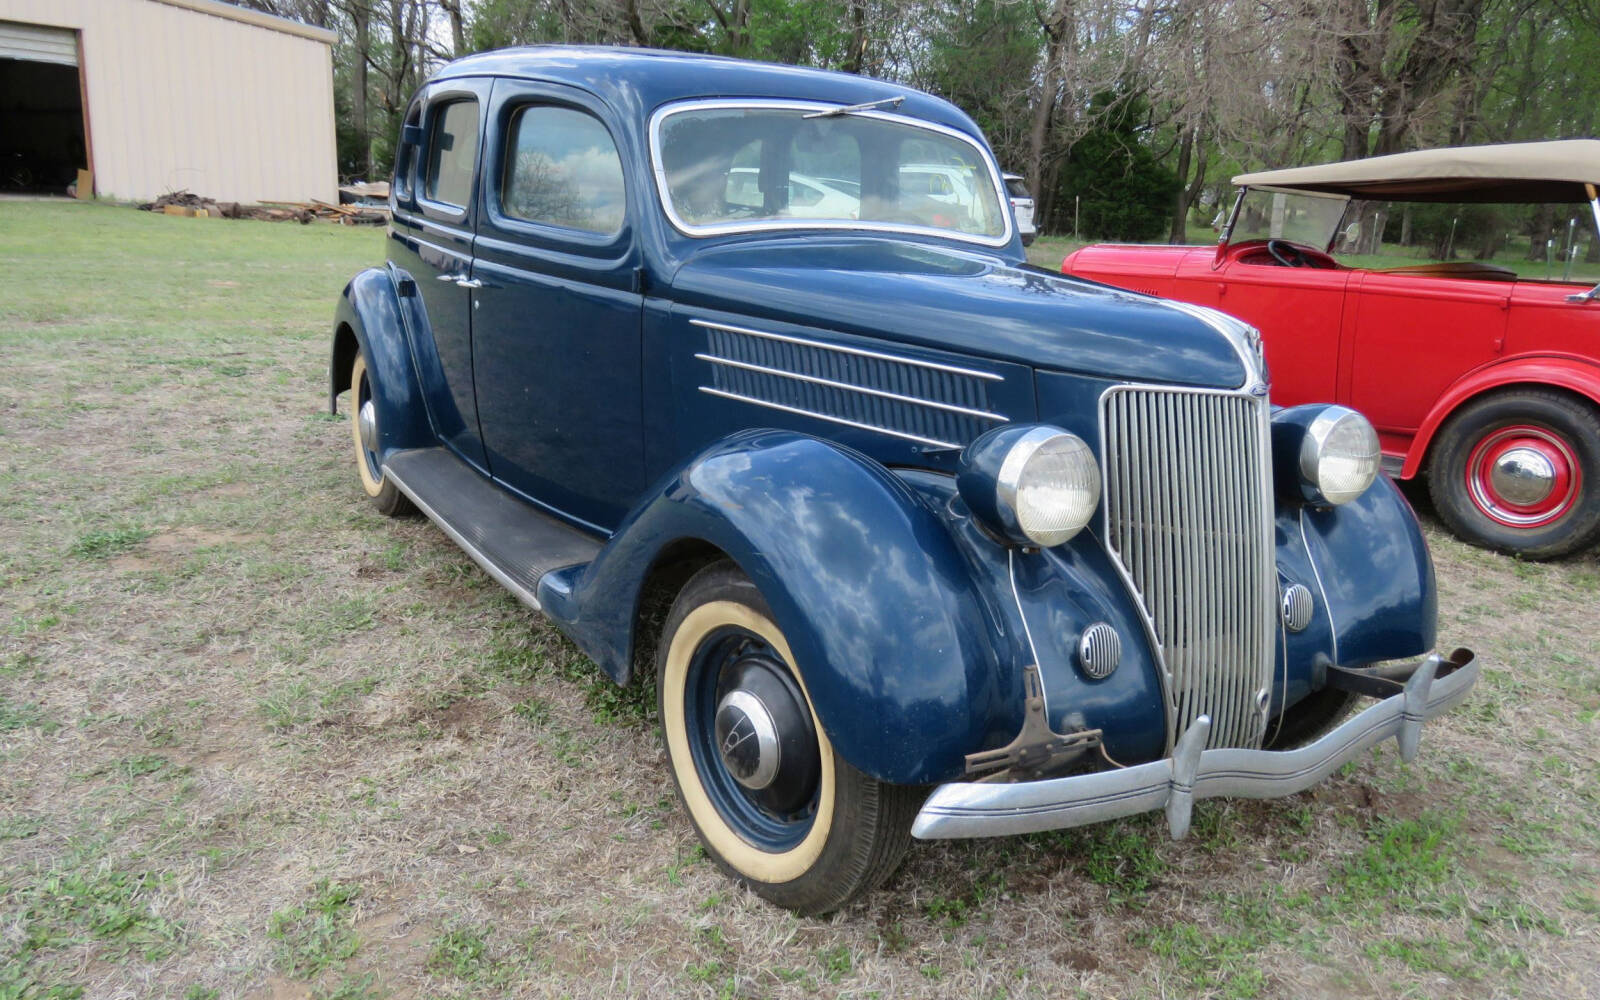 <p>1936 Ford sedan with suicide doors</p>